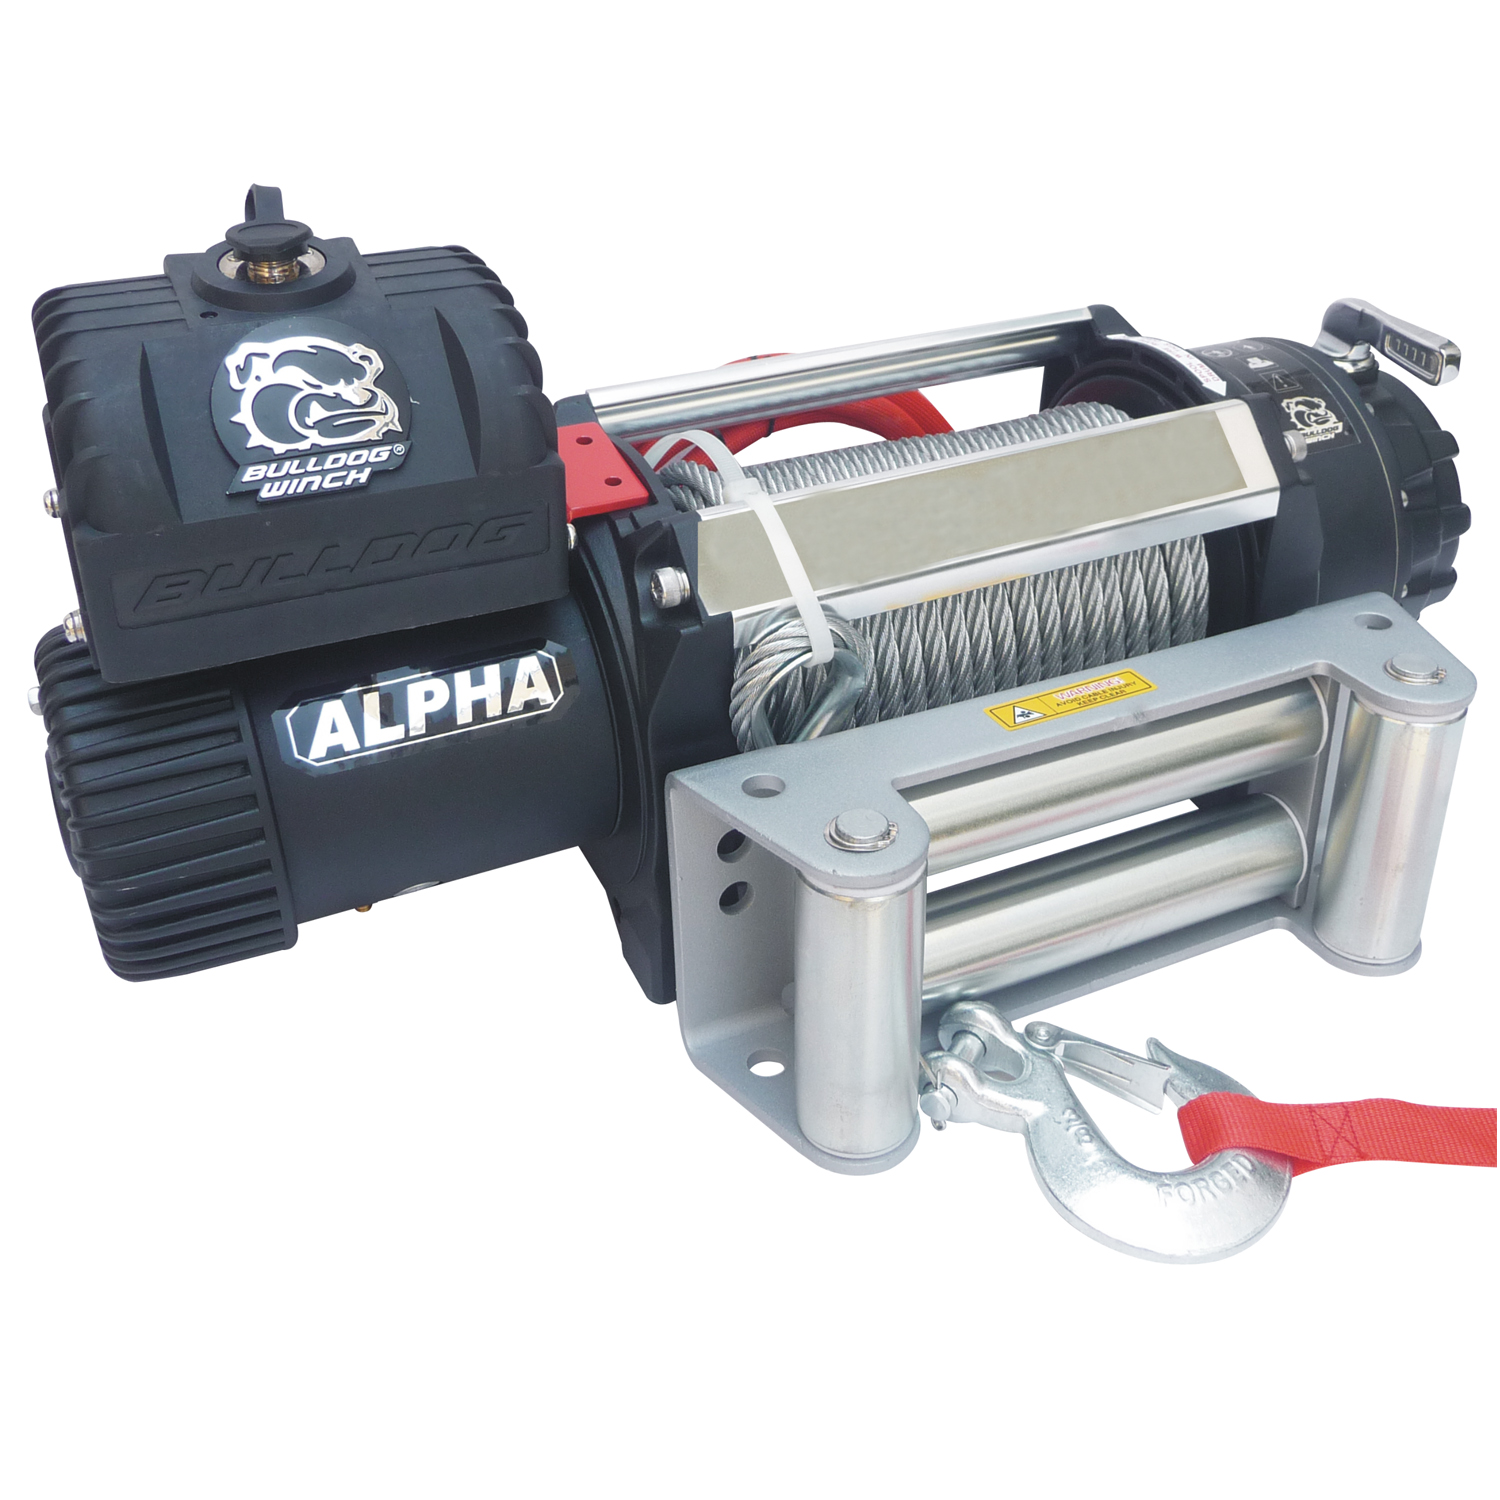 Bulldog Winch 15,000lb Alpha Truck Winch w/ Wire Rope